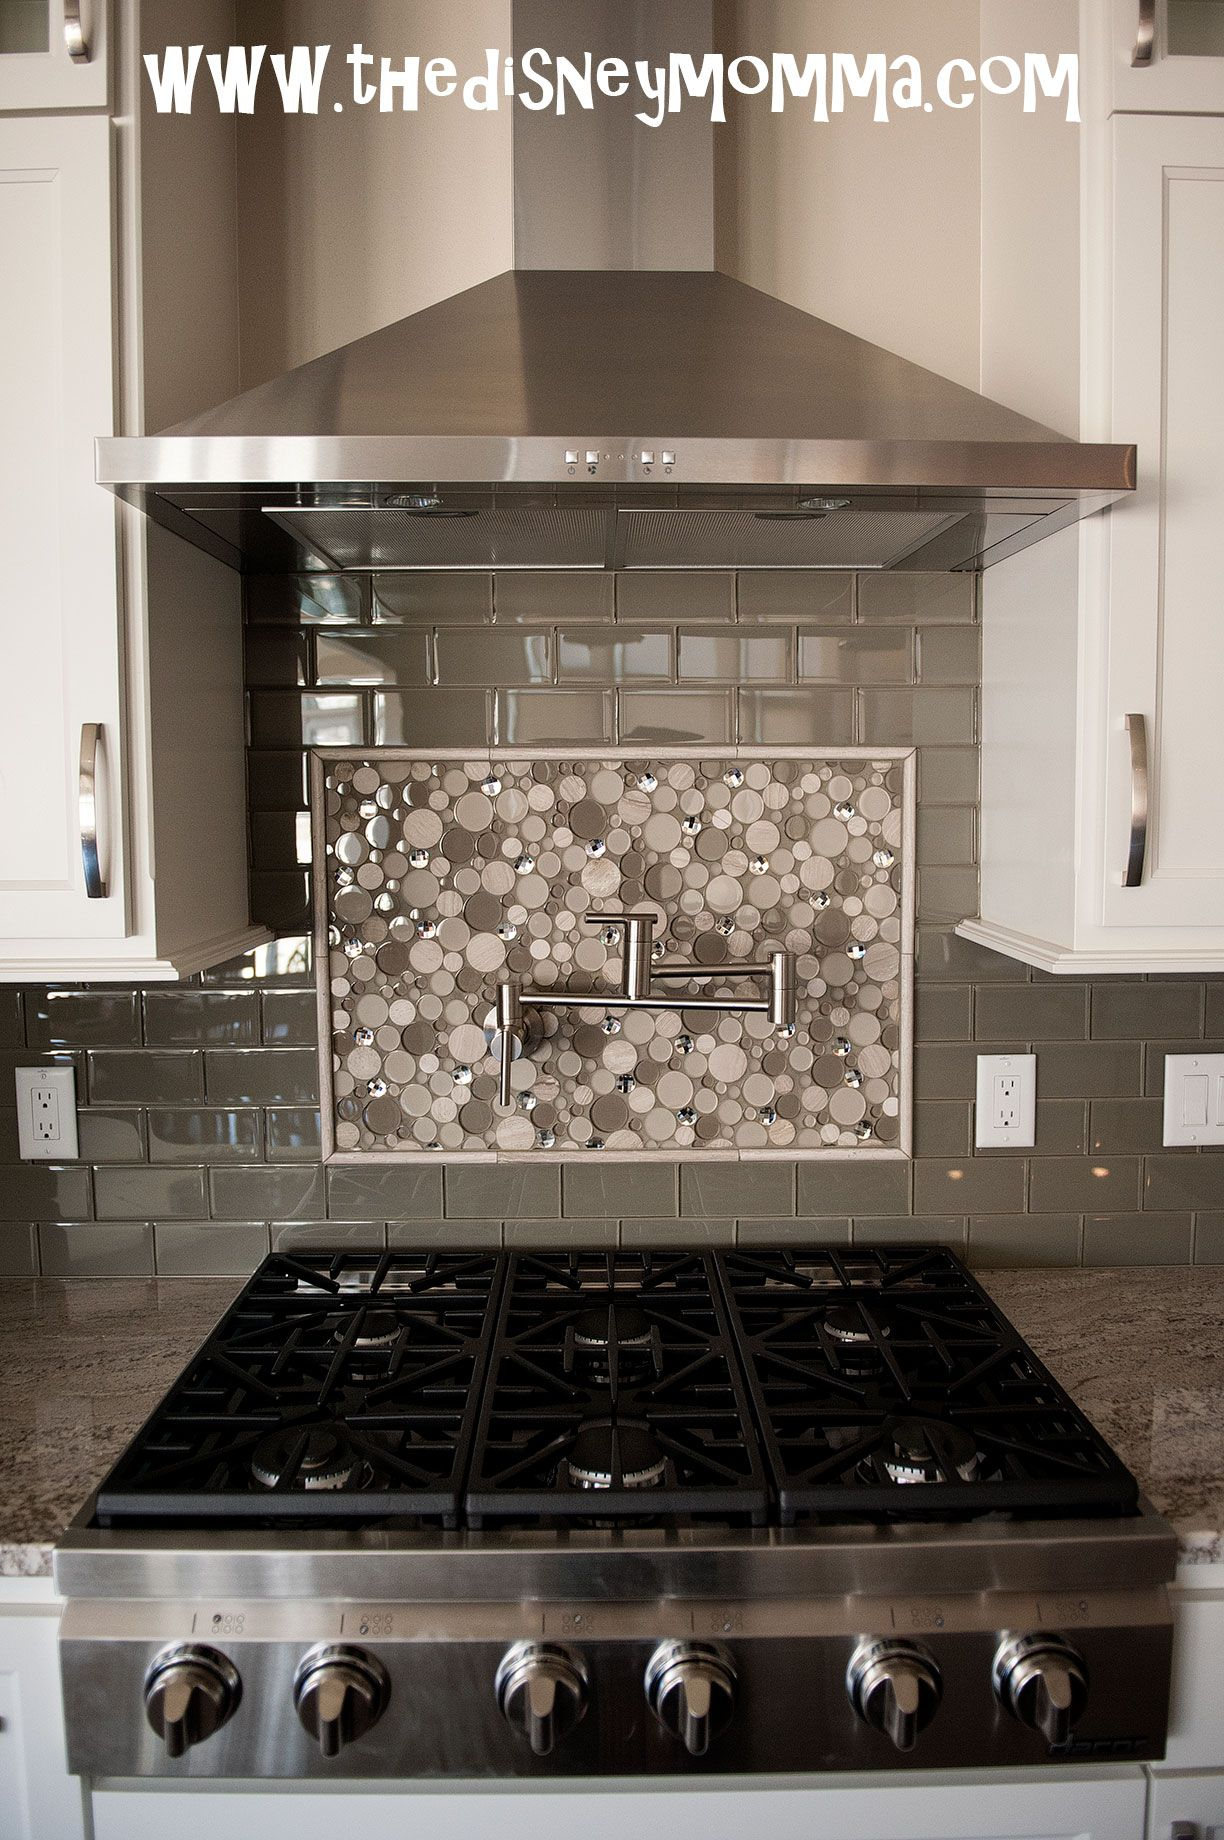 Backsplash Accent Ideas Dacor 36 Quot Gas Cooktop Glass Subway Tile Accent Back Splash